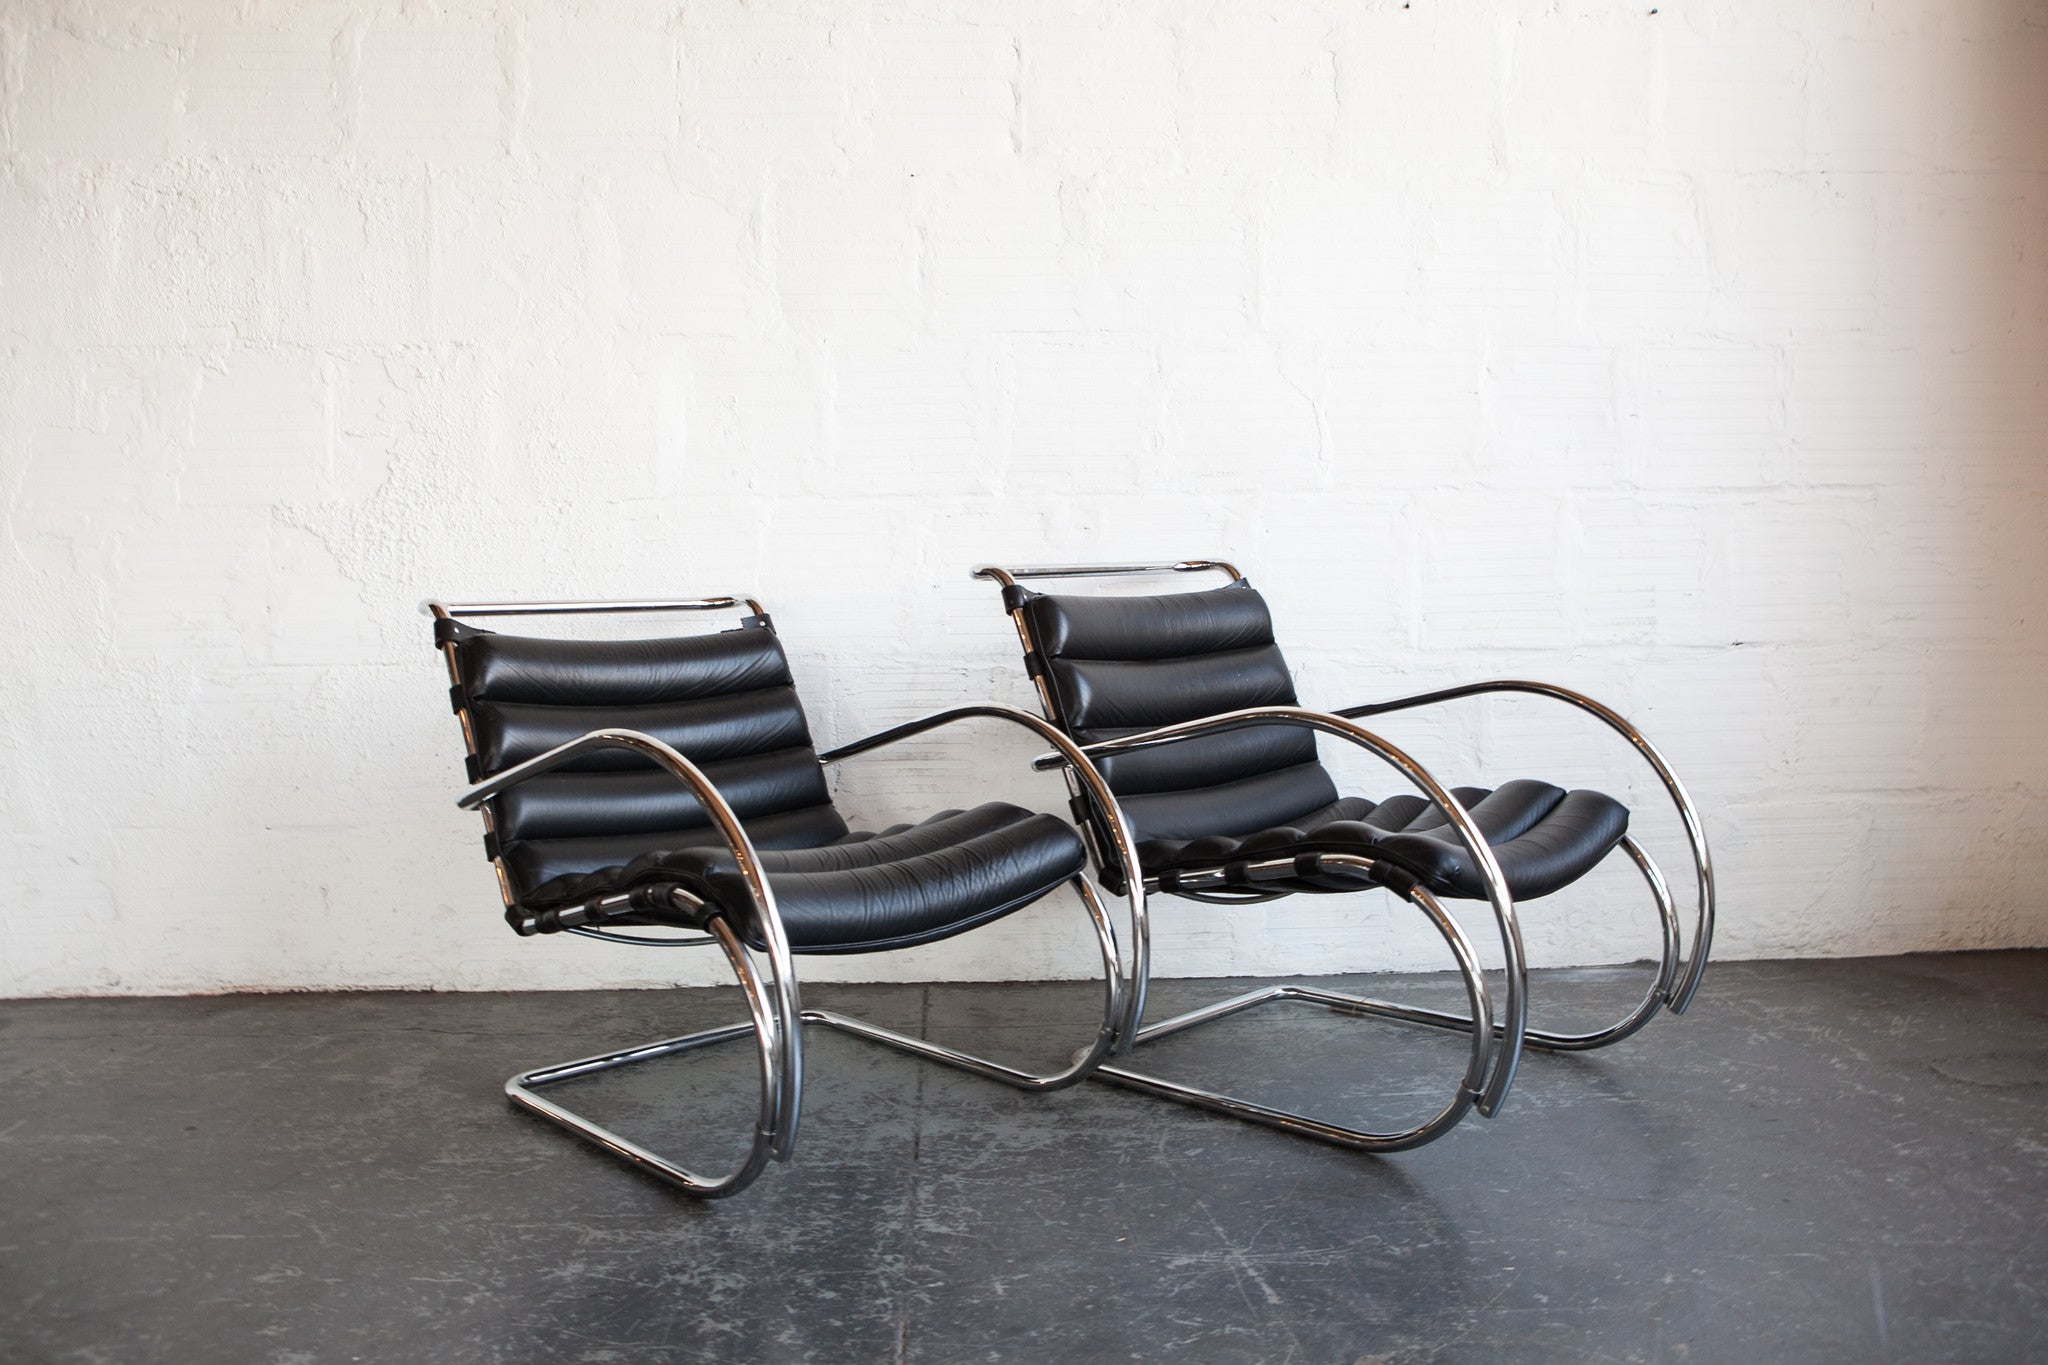 Groovy Mies Van Der Rohe Mr40 Lounge Chairs The Good Mod Squirreltailoven Fun Painted Chair Ideas Images Squirreltailovenorg